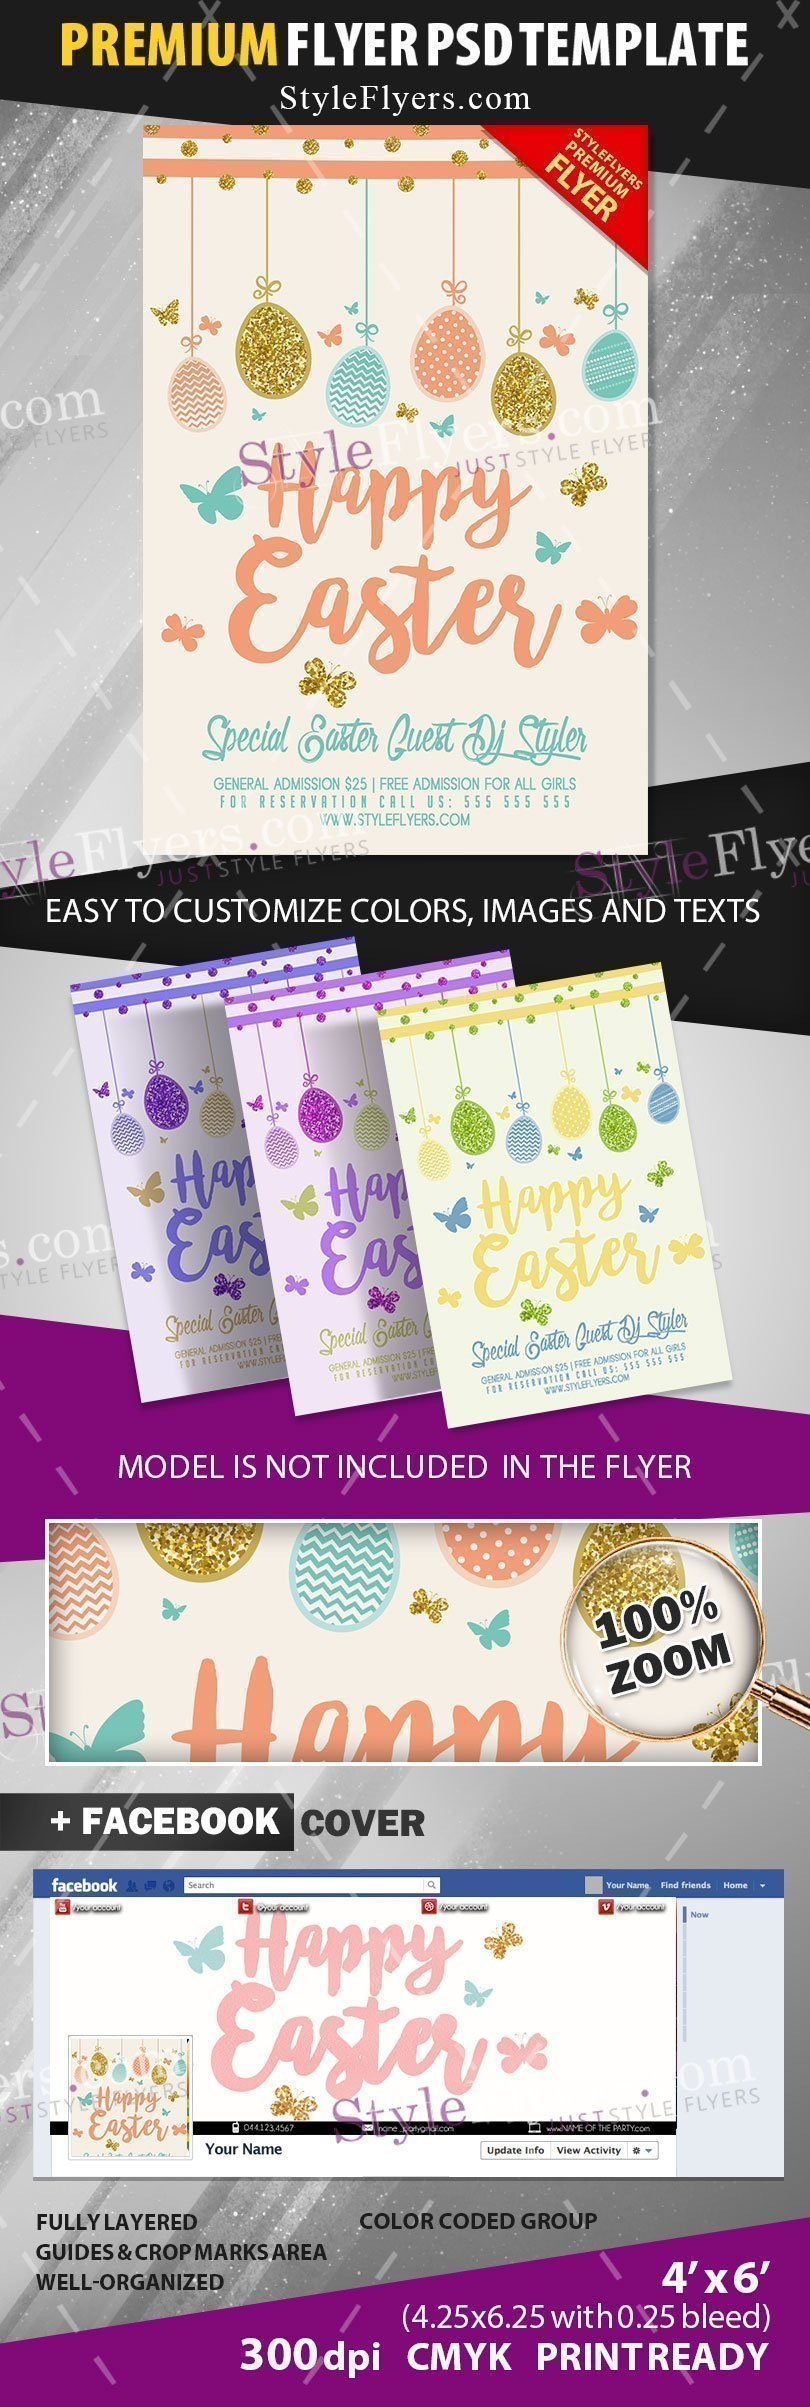 preview_Easter_Poster_Flyer_premium_template